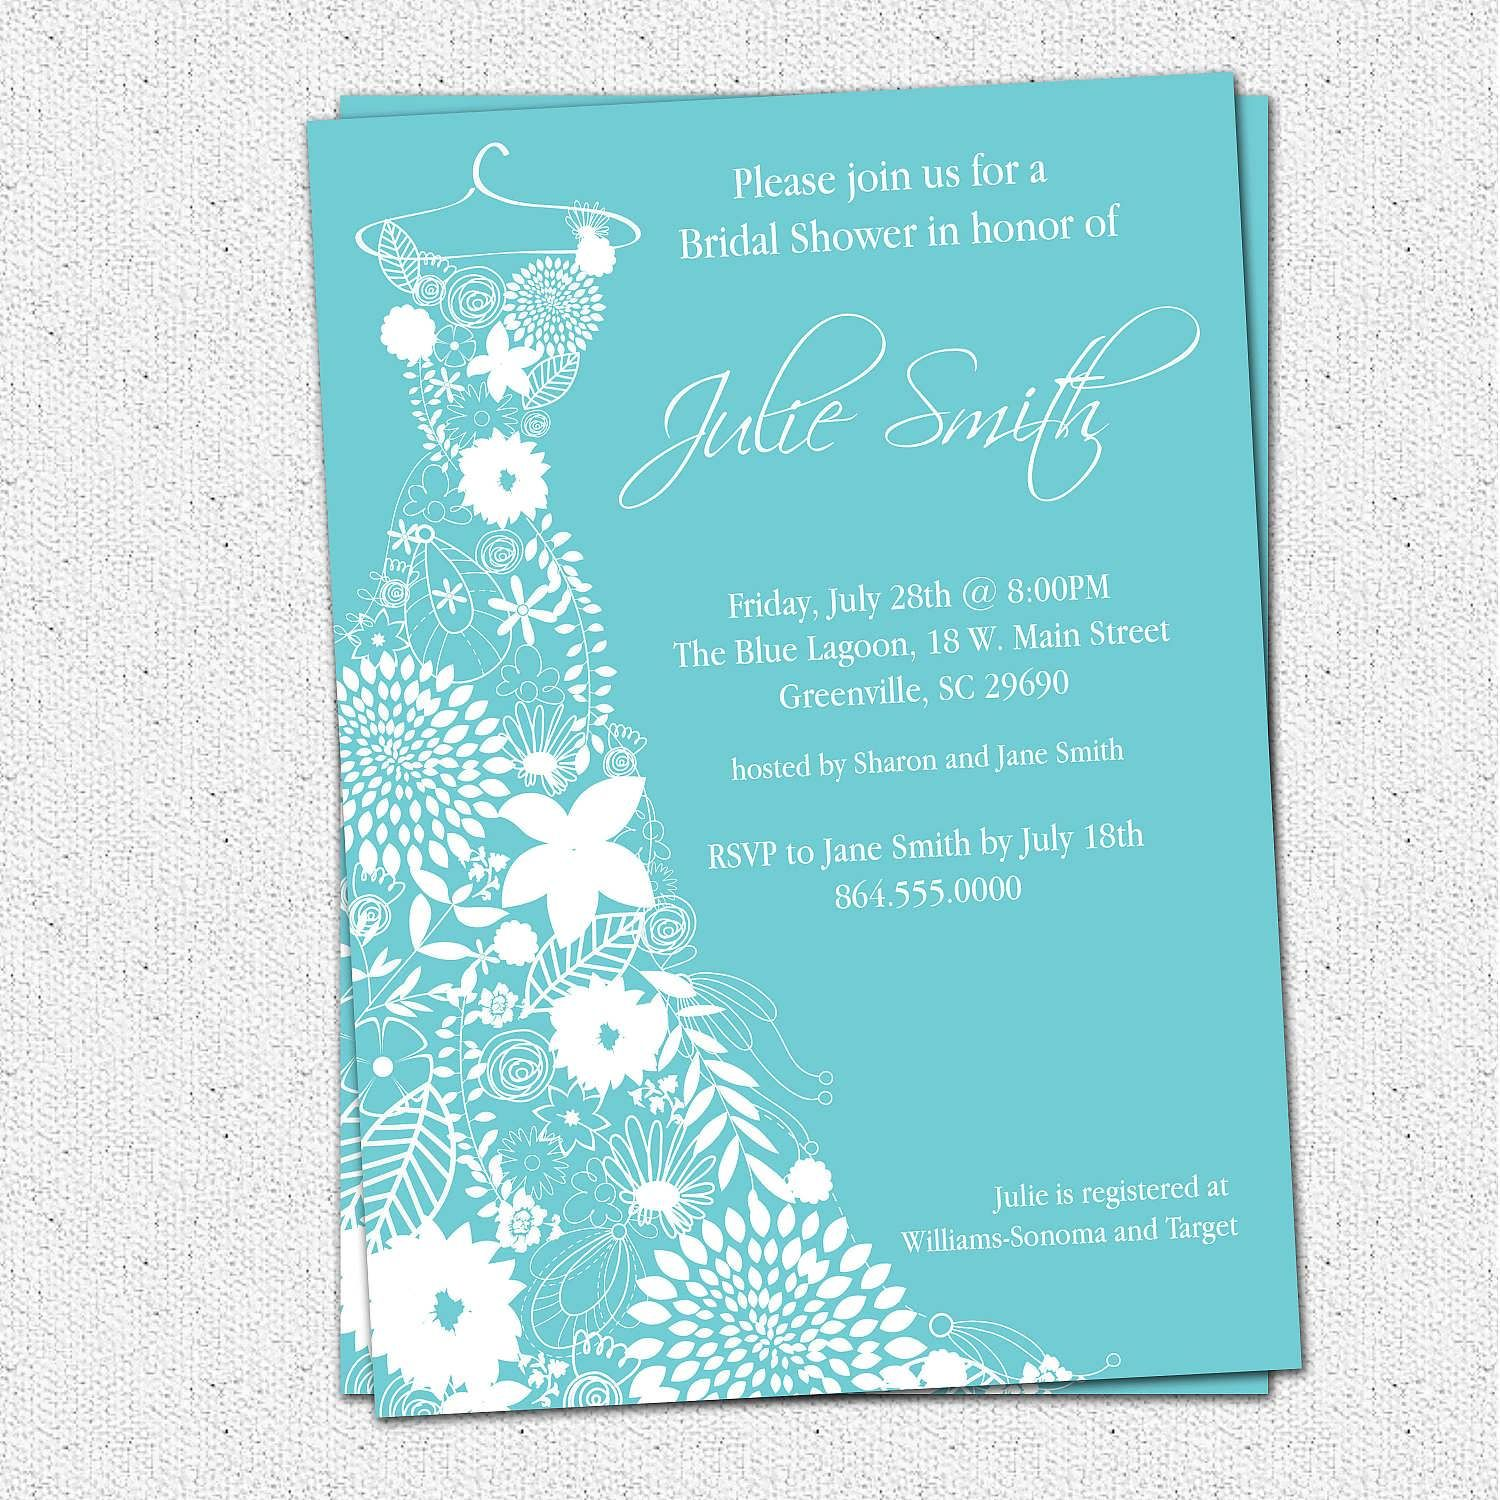 Bridal Shower Invitation Templates Microsoft Word Bridal Shower - Wedding invitation templates: blank wedding invitation templates for microsoft word